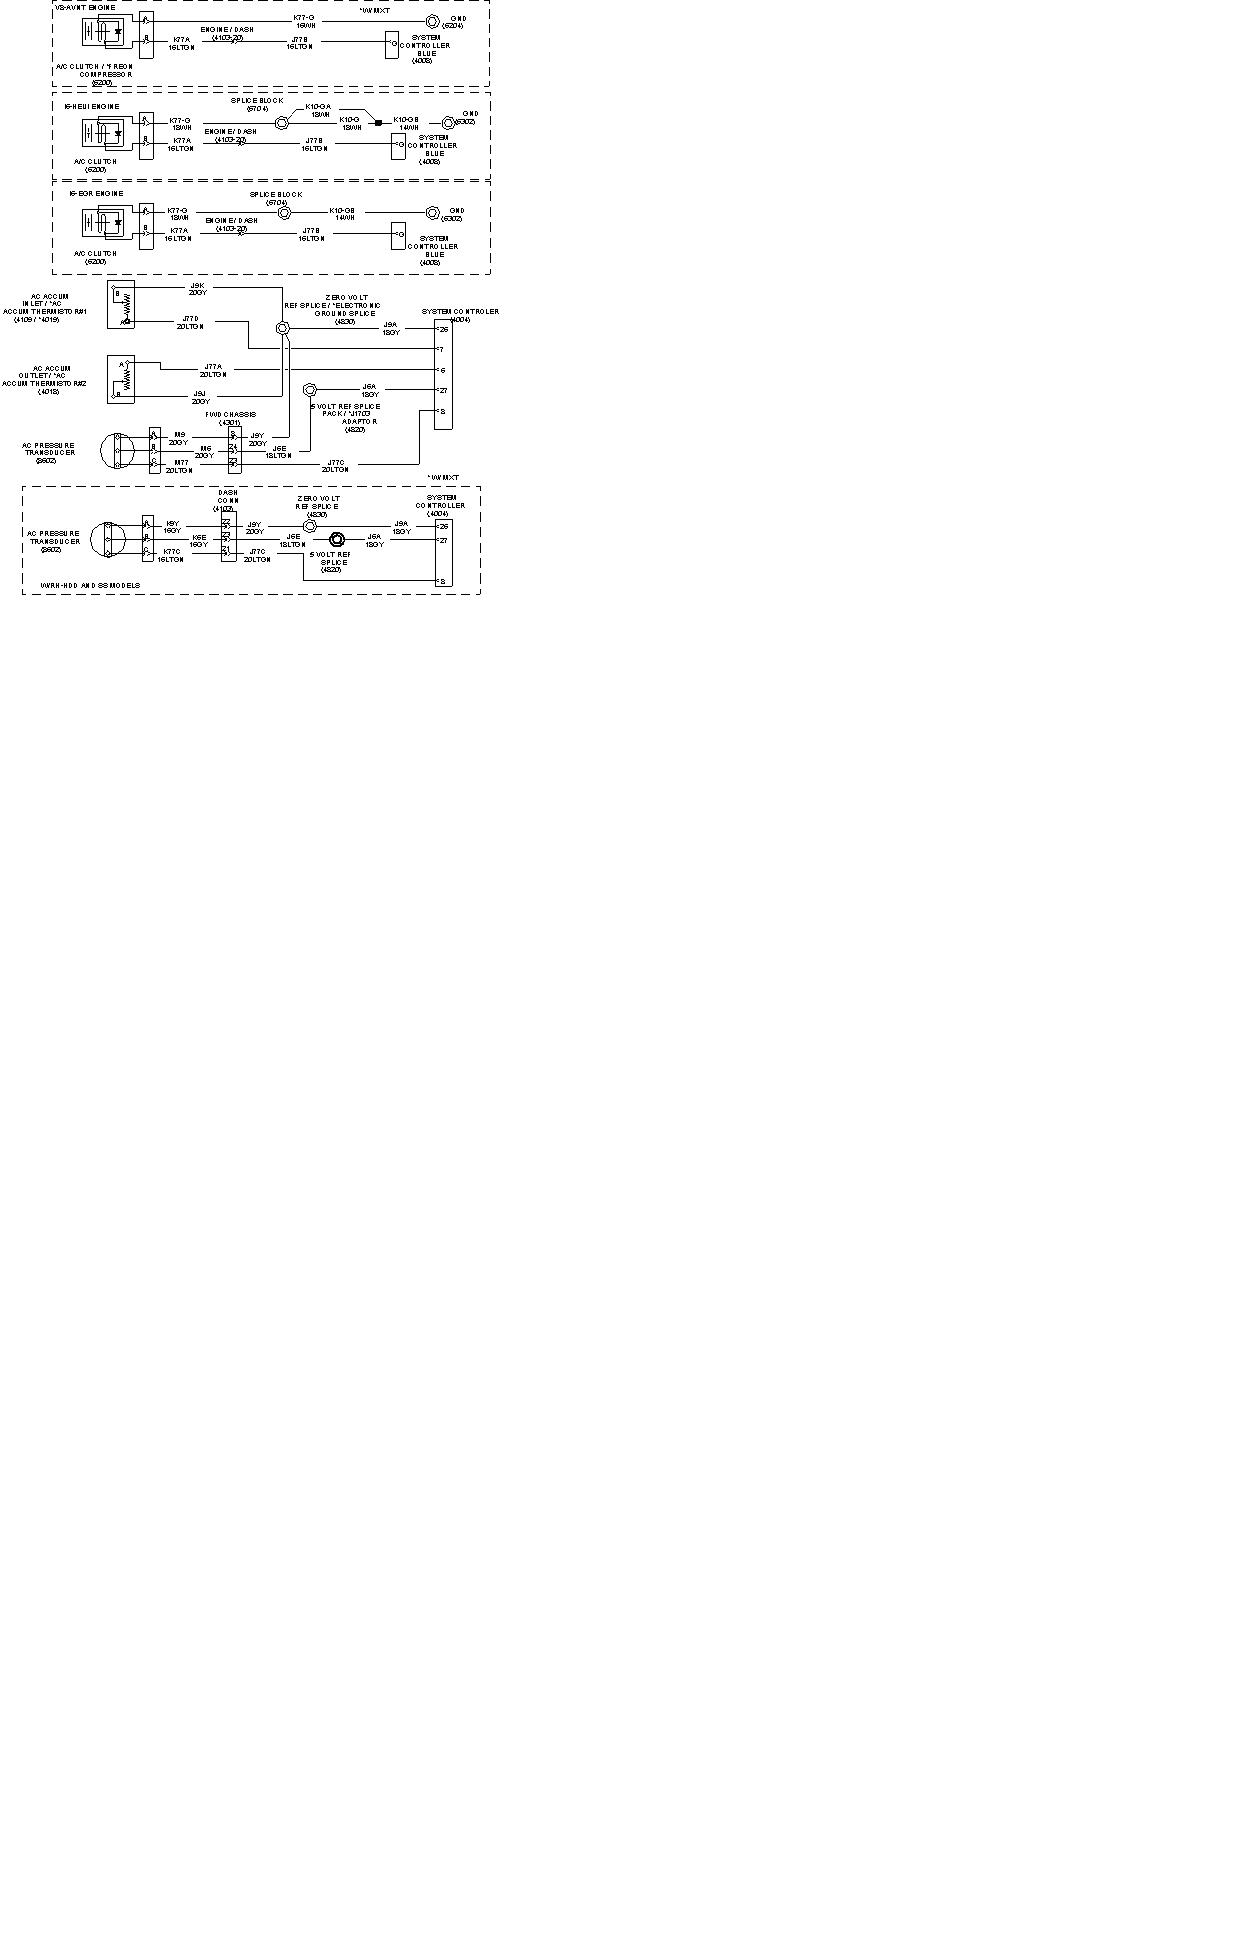 05 scion xb horn wiring diagram  05  free engine image for